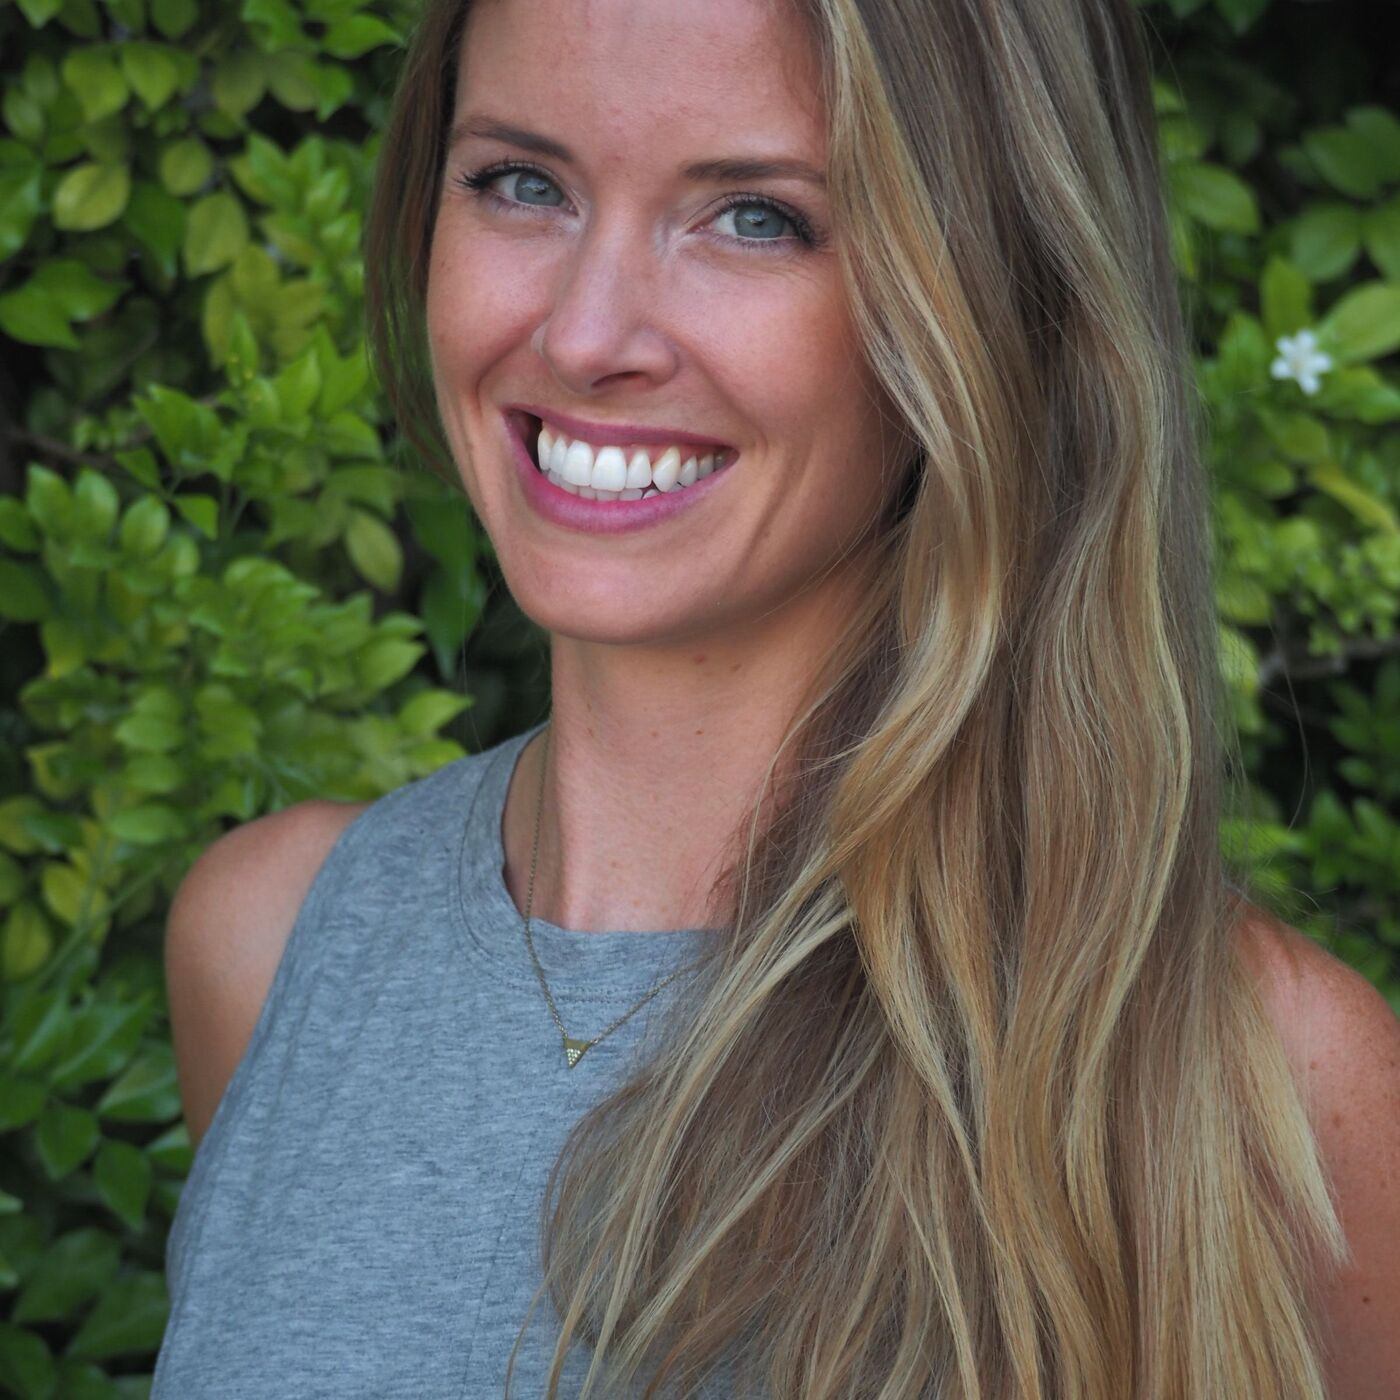 Episode 73: Series - Anti-Diet Approaches to New Year's Resolutions with Lisa Carrigg